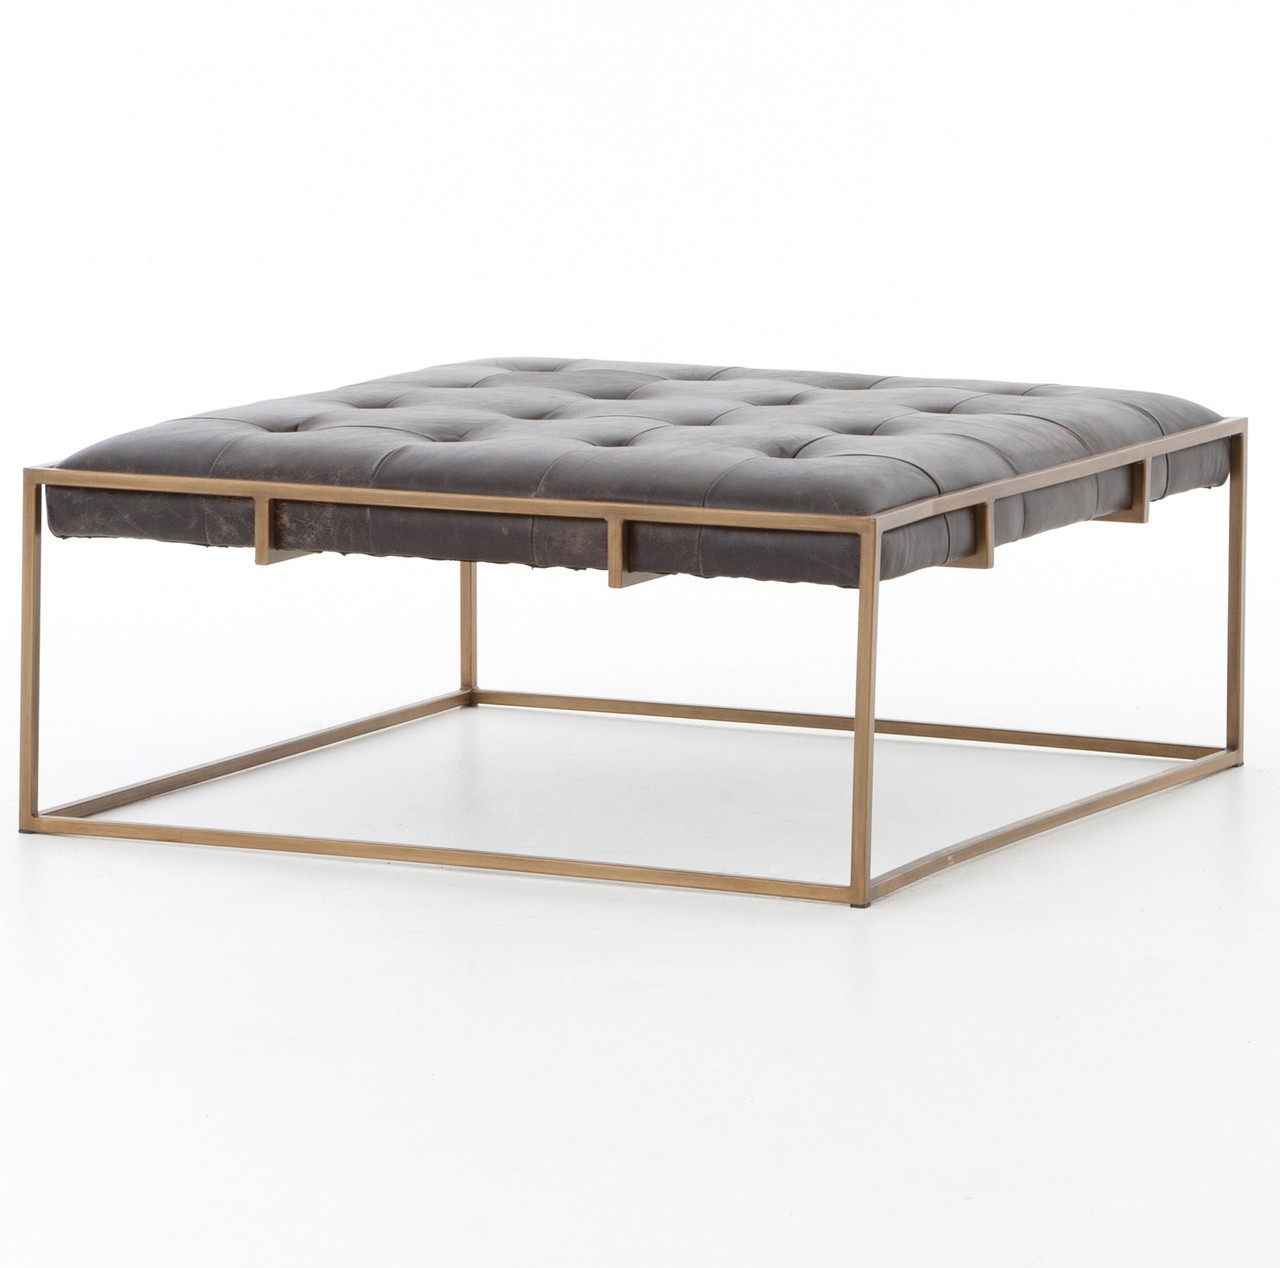 oxford tufted black leather square ottoman coffee table | zin home